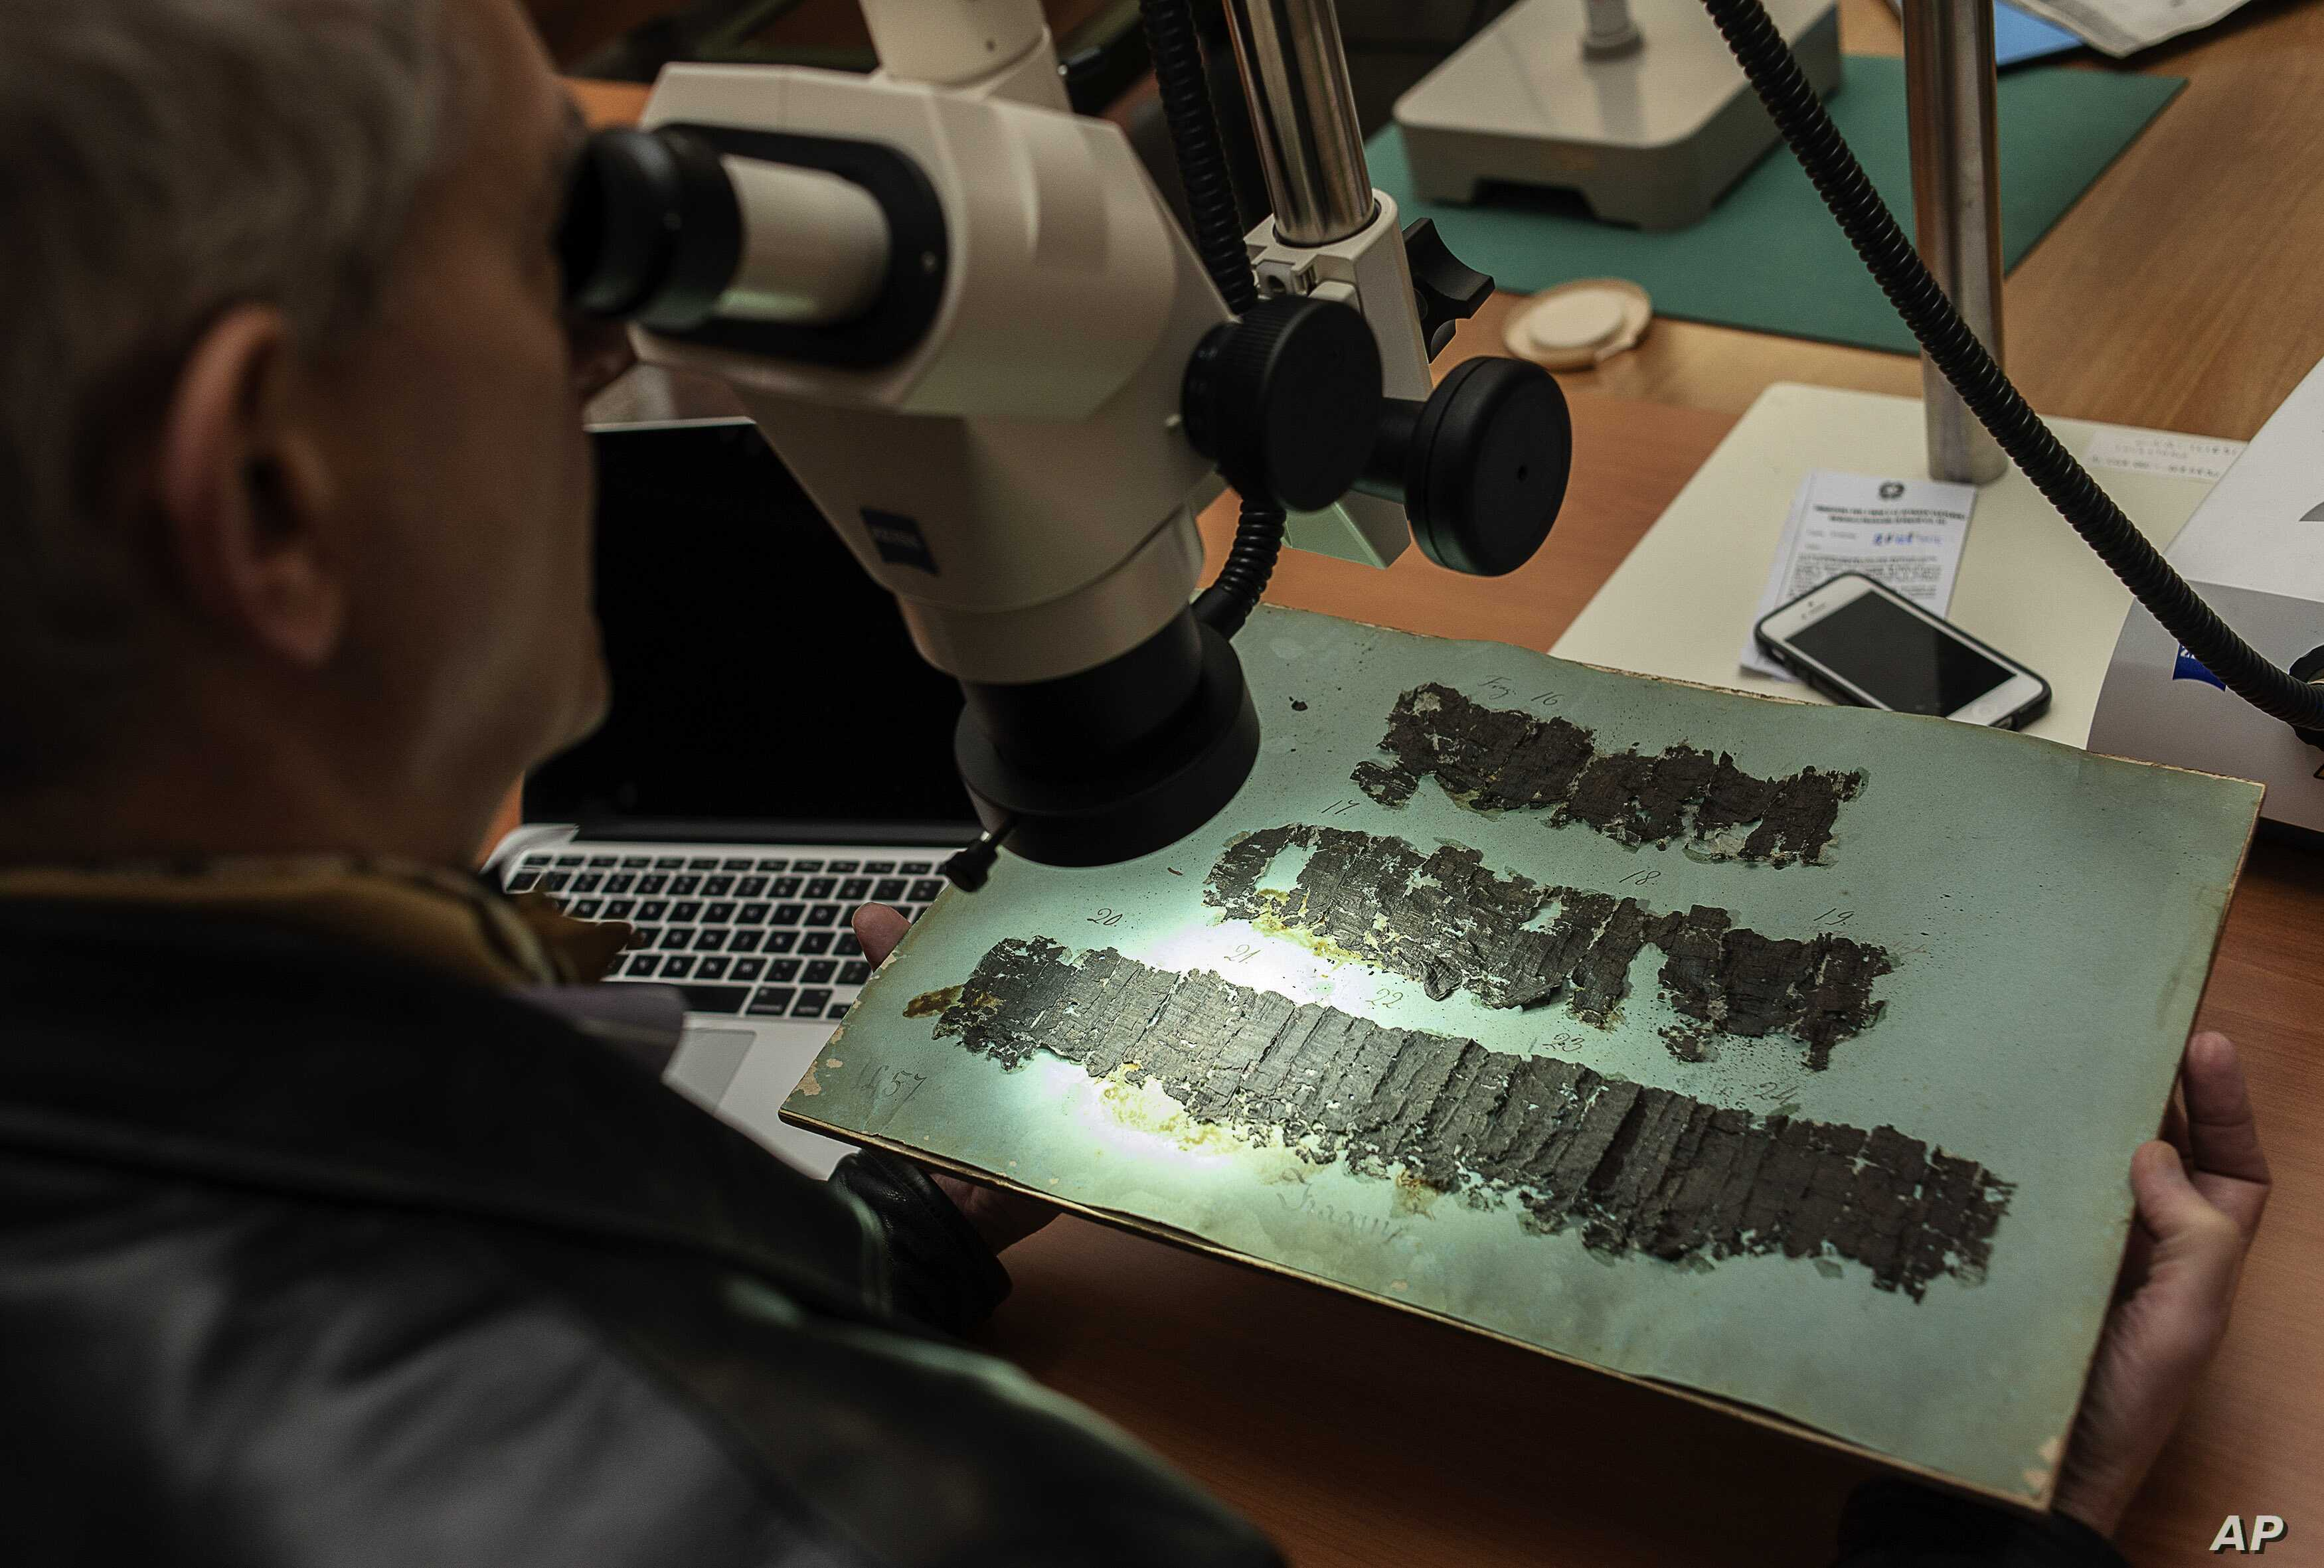 David Blank, a professor of classics at the University of California, looks through a microscope at an ancient papyrus at the Naples National Library in Italy, Jan. 20, 2015.